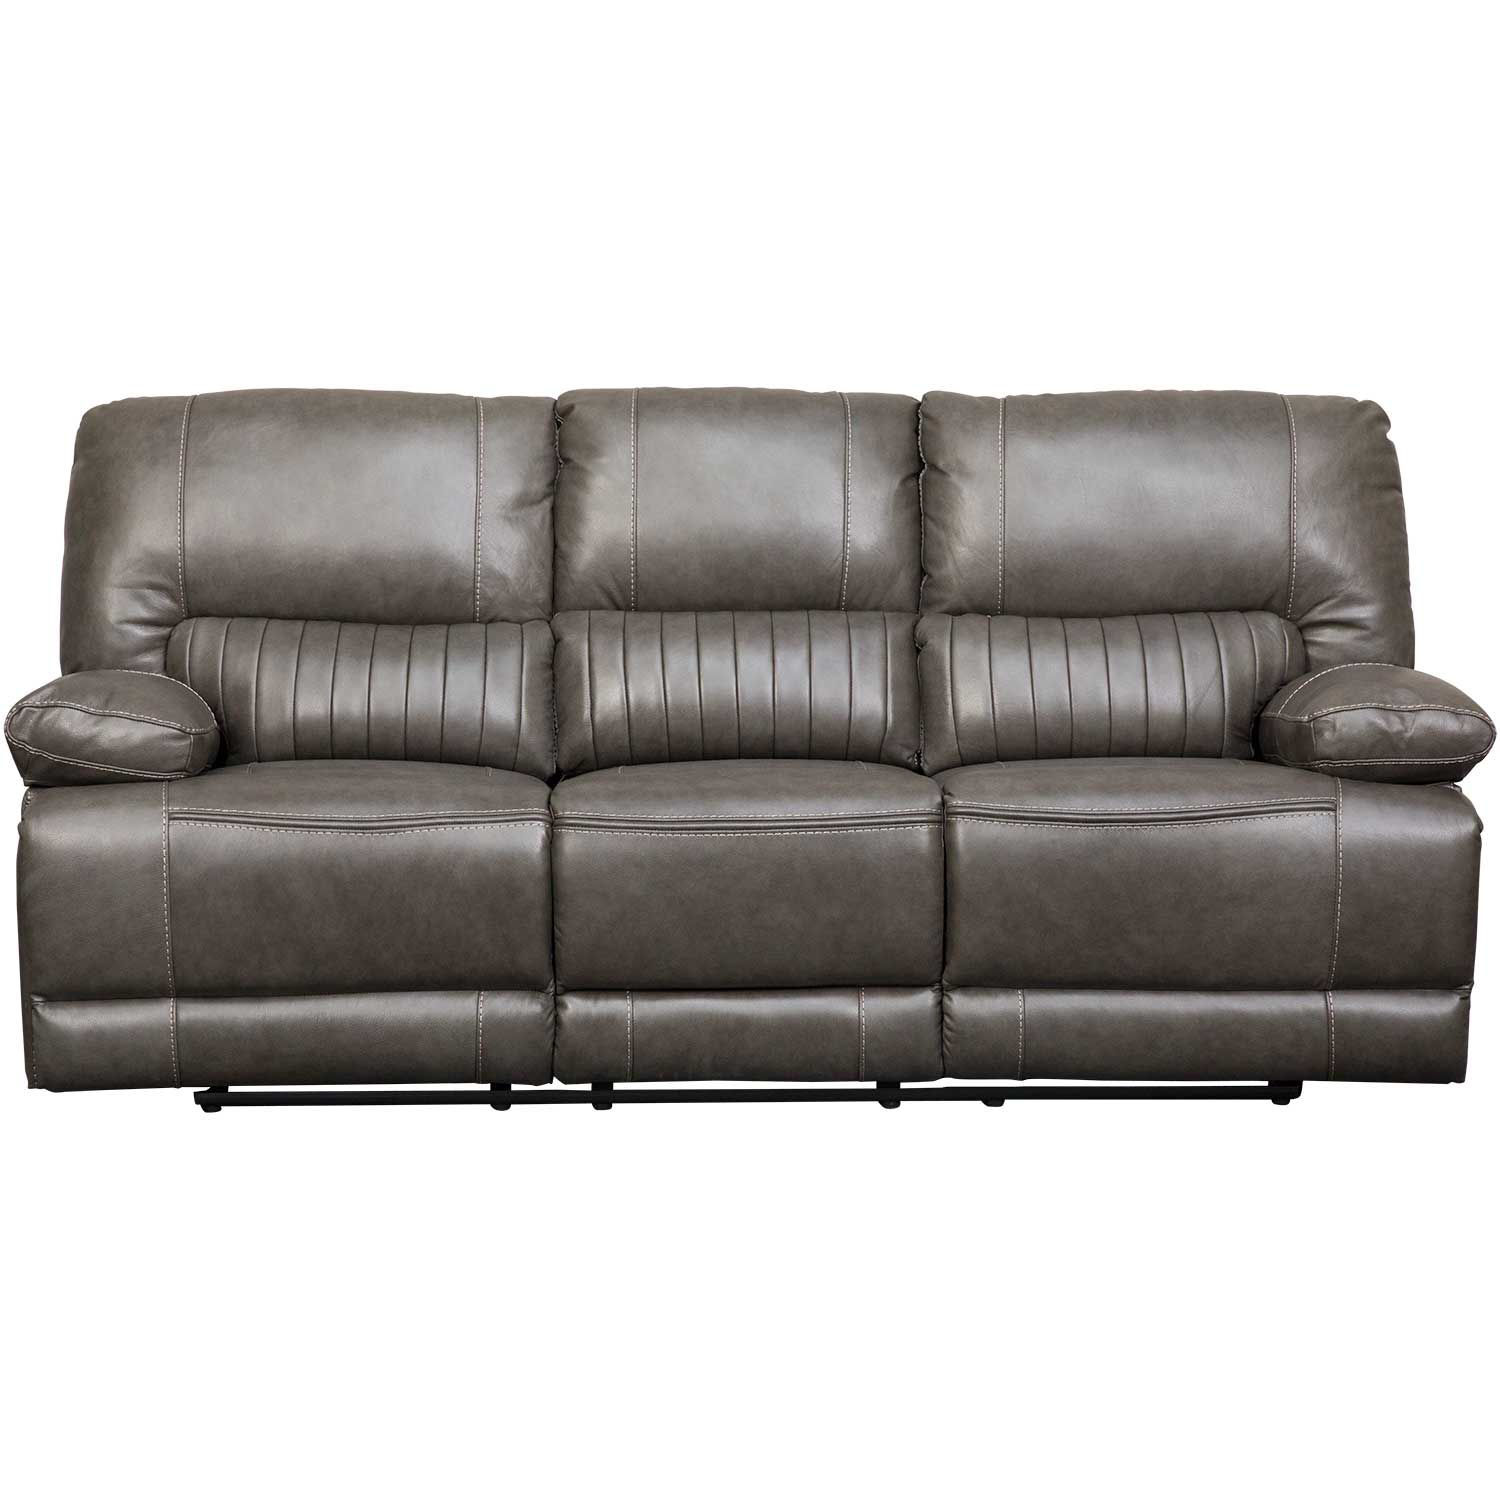 Picture of Rigby Gray Leather Power Recline Sofa